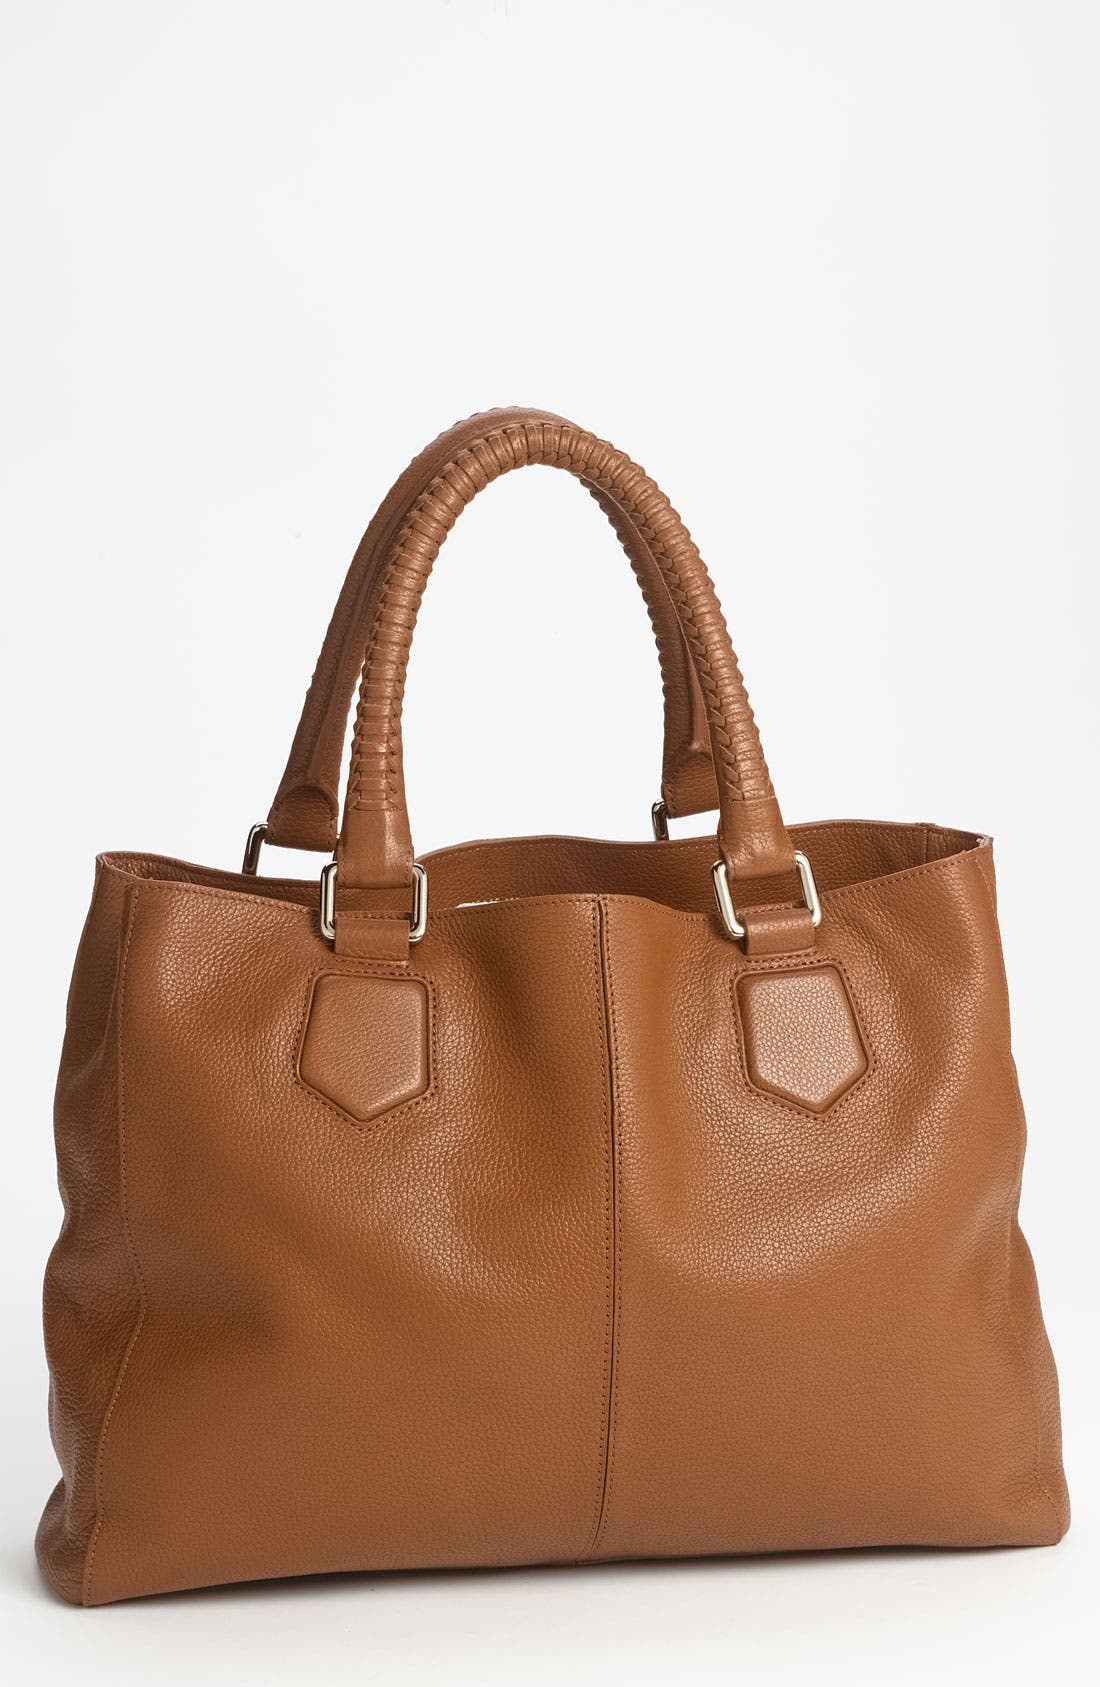 Alternate Image 1 Selected - Lafayette 148 New York 'Mila' Leather Shoulder Bag